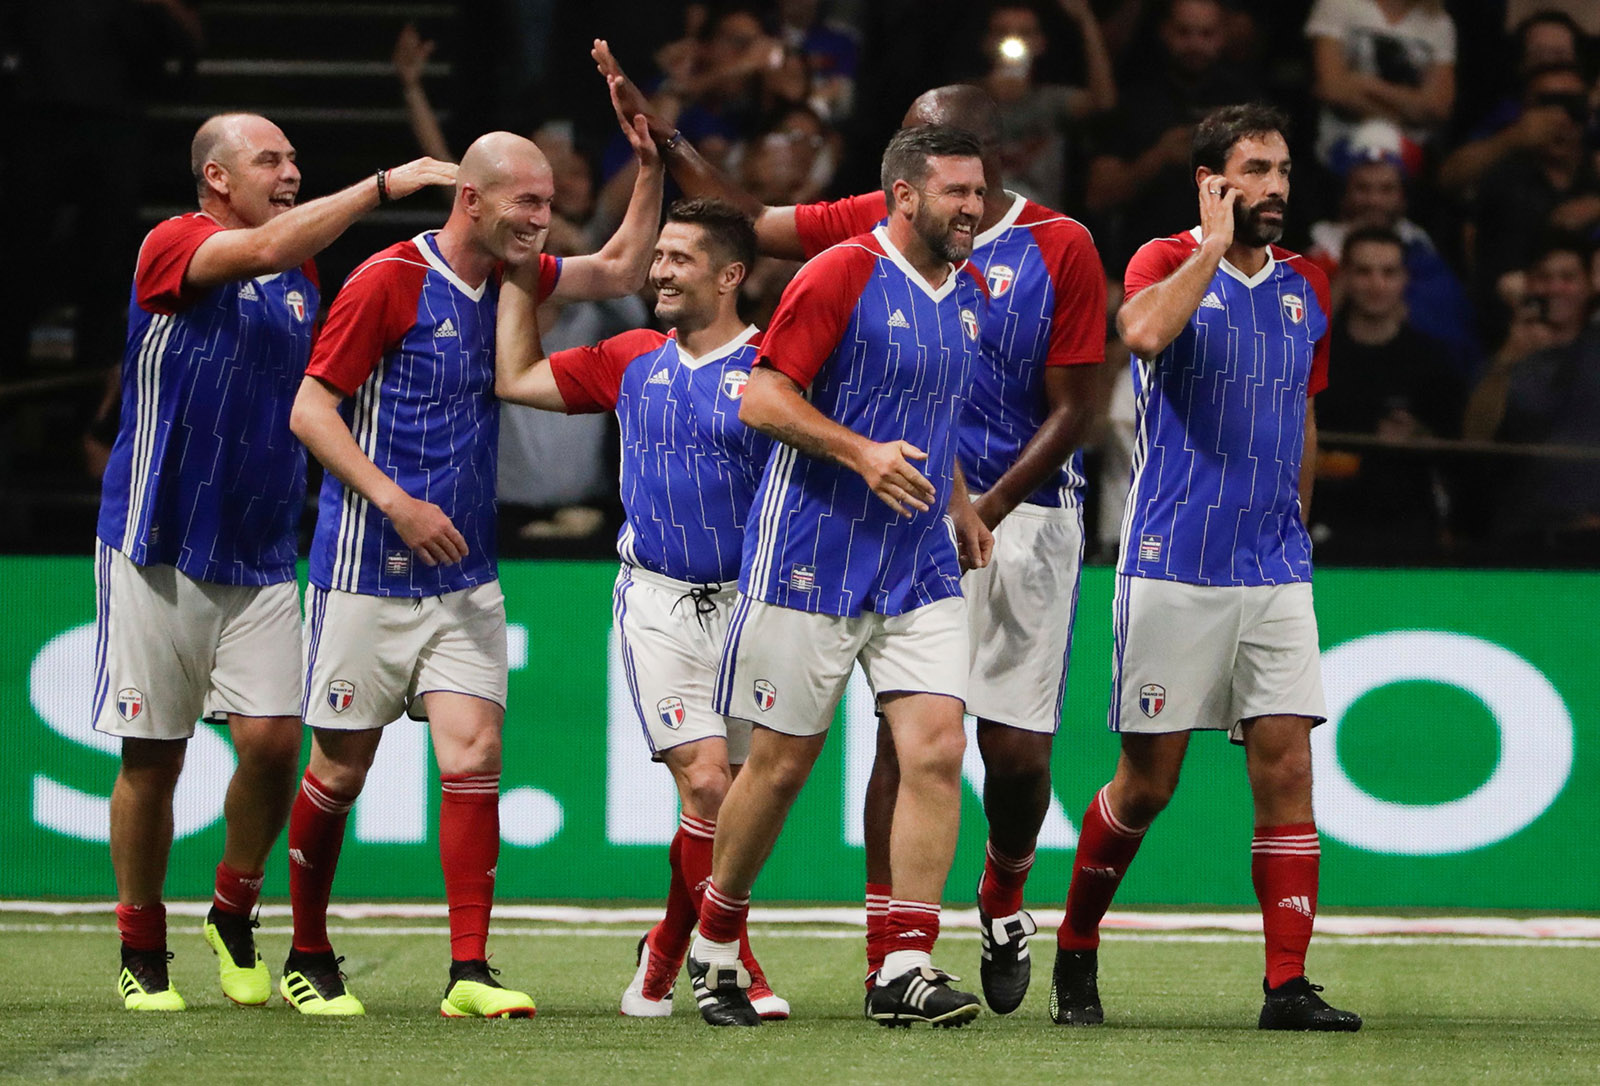 Players celebrating after Zinedine Zidane (second left) scored in an exhibition match featuring veterans from France's 1998 World Cup-winning team, Nanterre, France, June 12, 2018